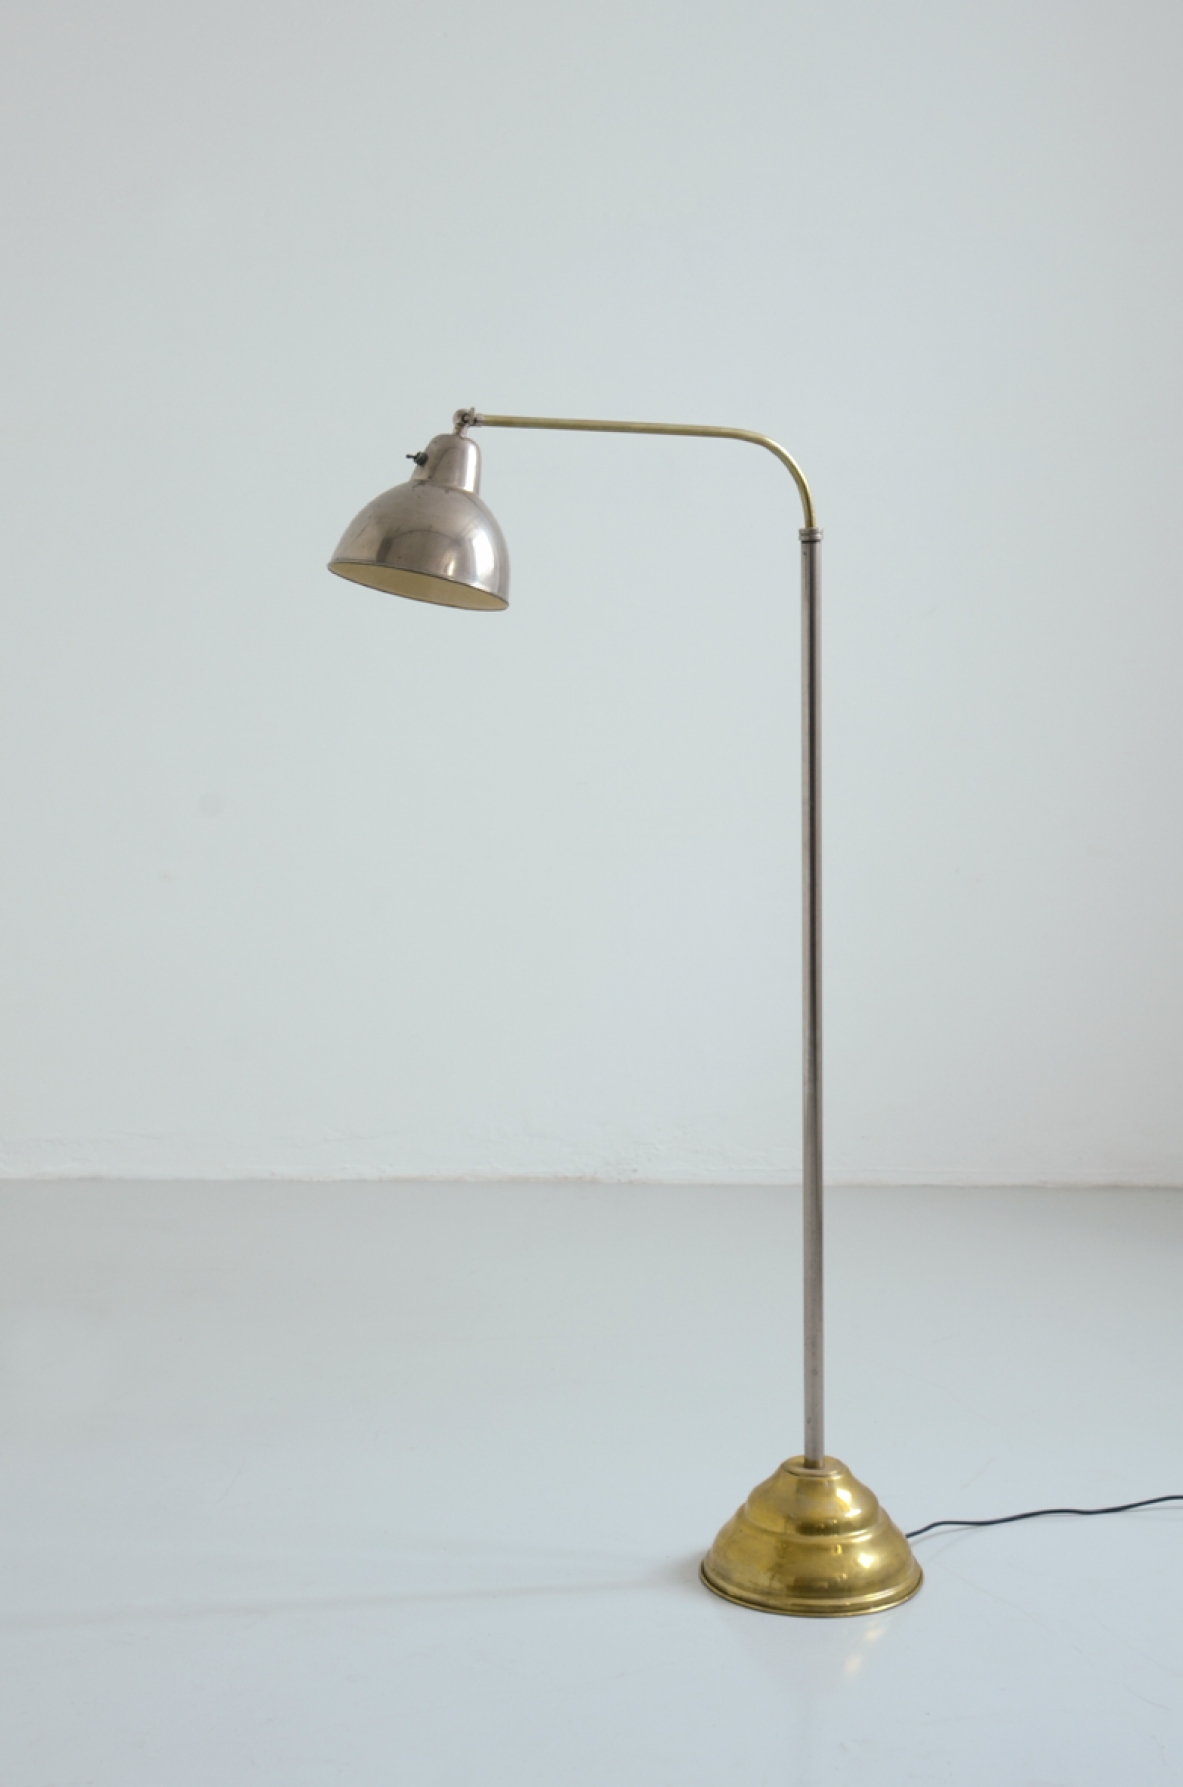 Floor lamp in brass and metal chromed, France 1930's.